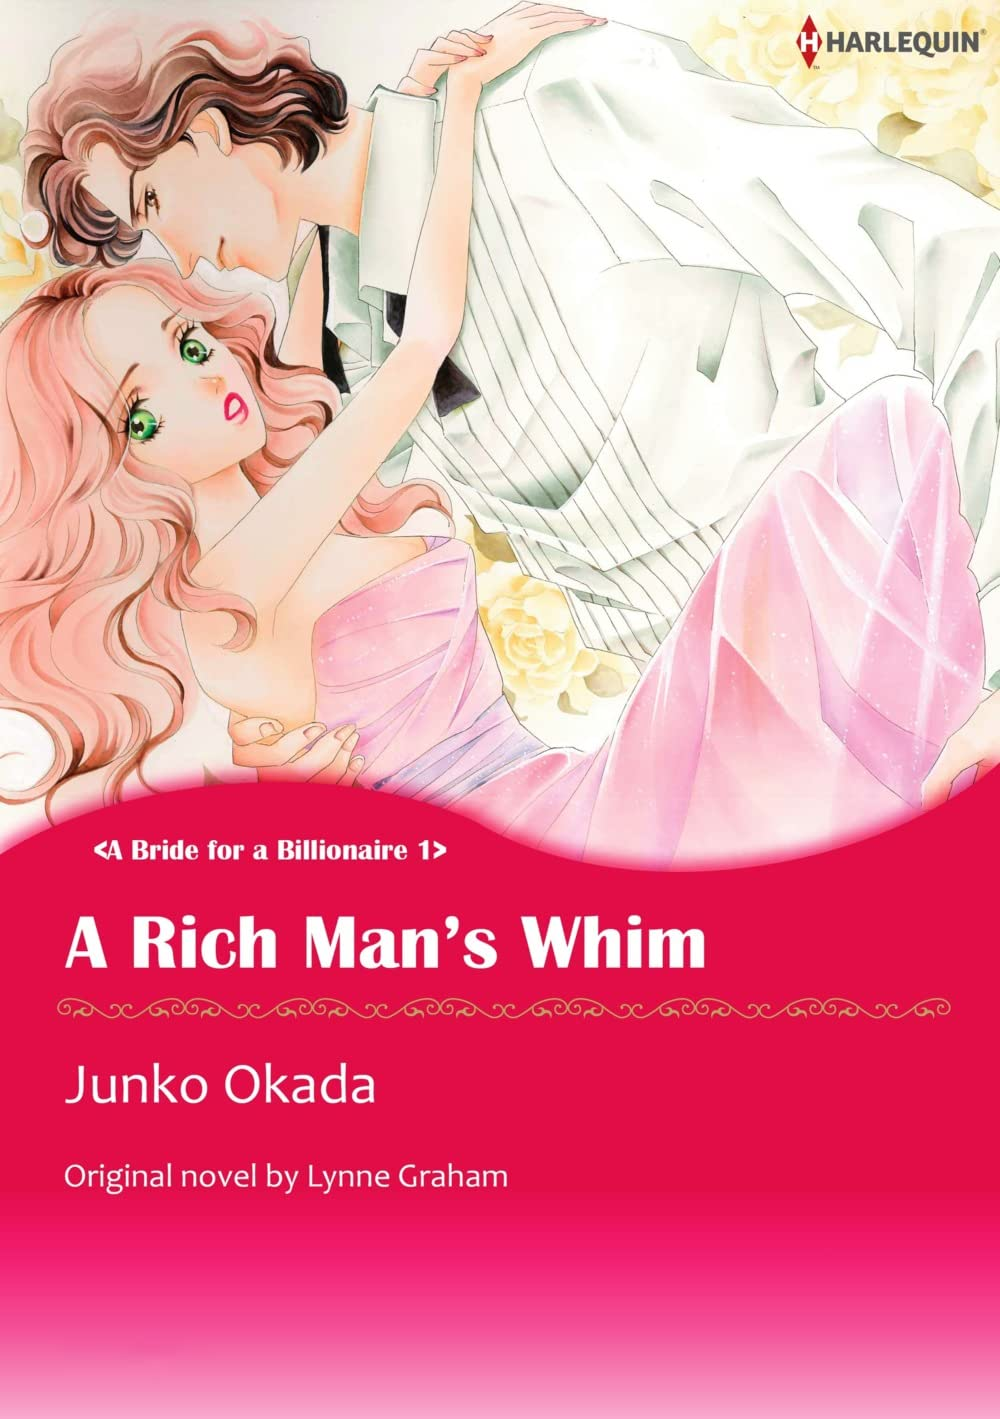 A Rich Man's Whim